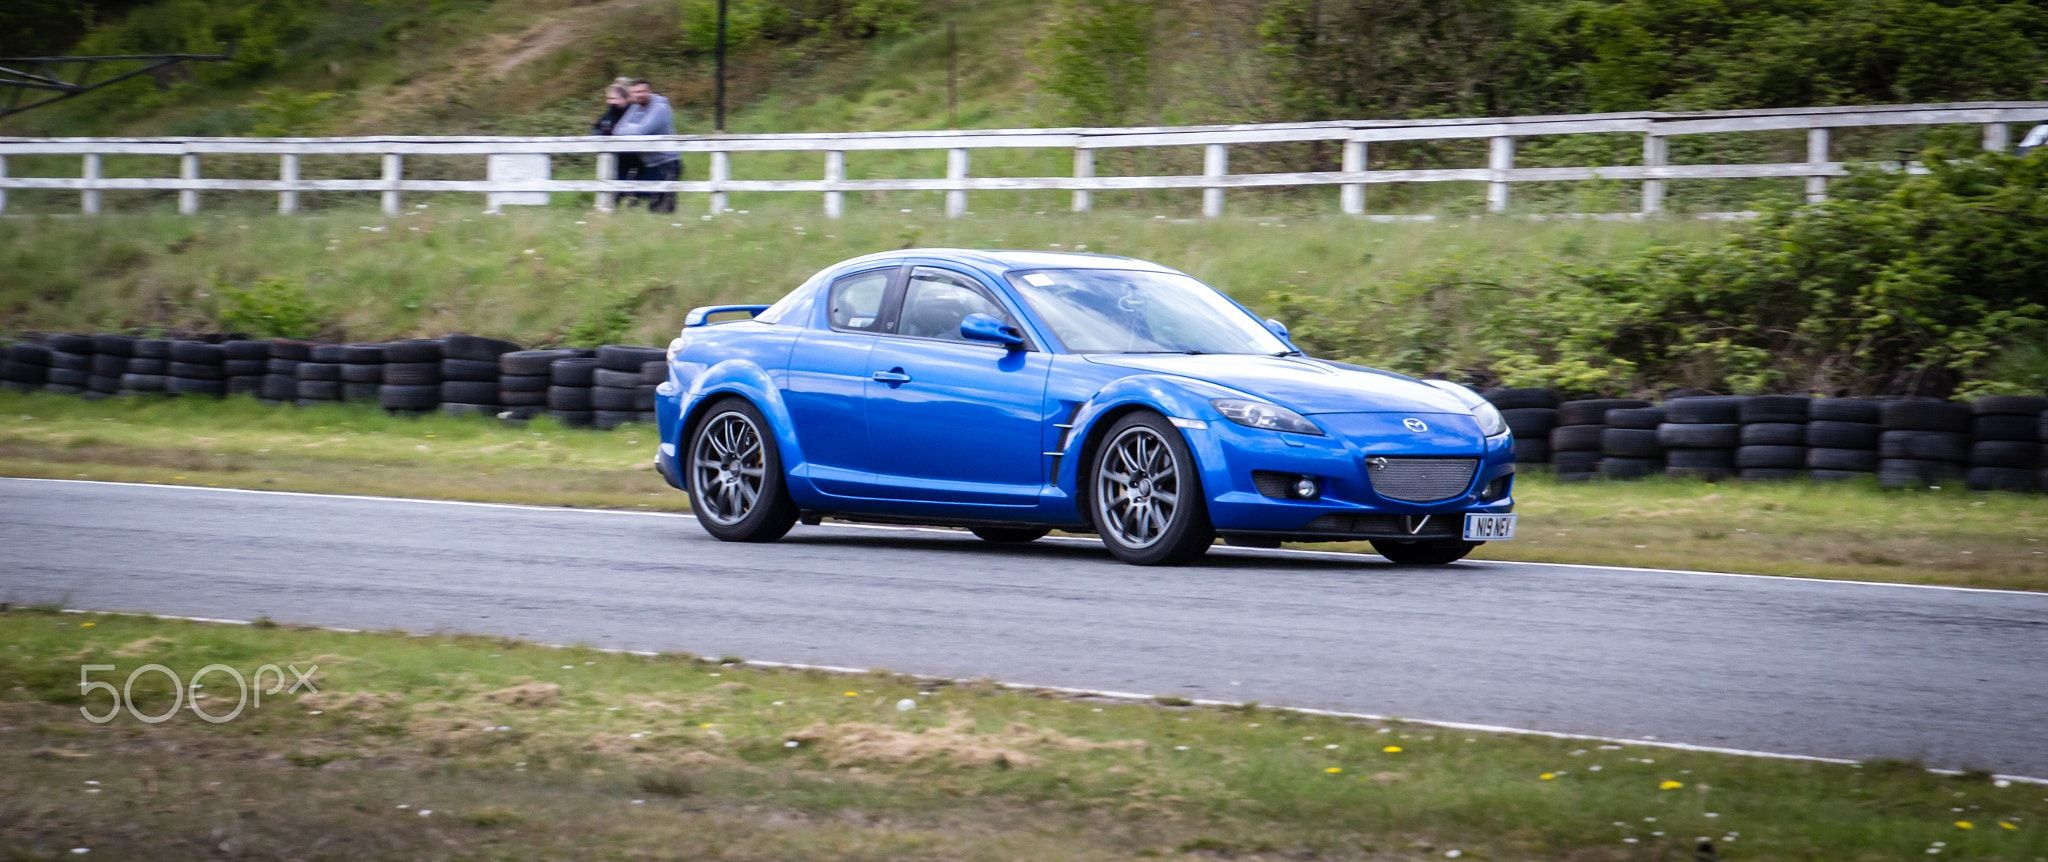 Mazda Rx 8 I Mazda Rx 8 Taken At The Three Sisters Race Circuit Rh  Pinterest Com New Mazda RX  9 Mazda RX 9 Release Date